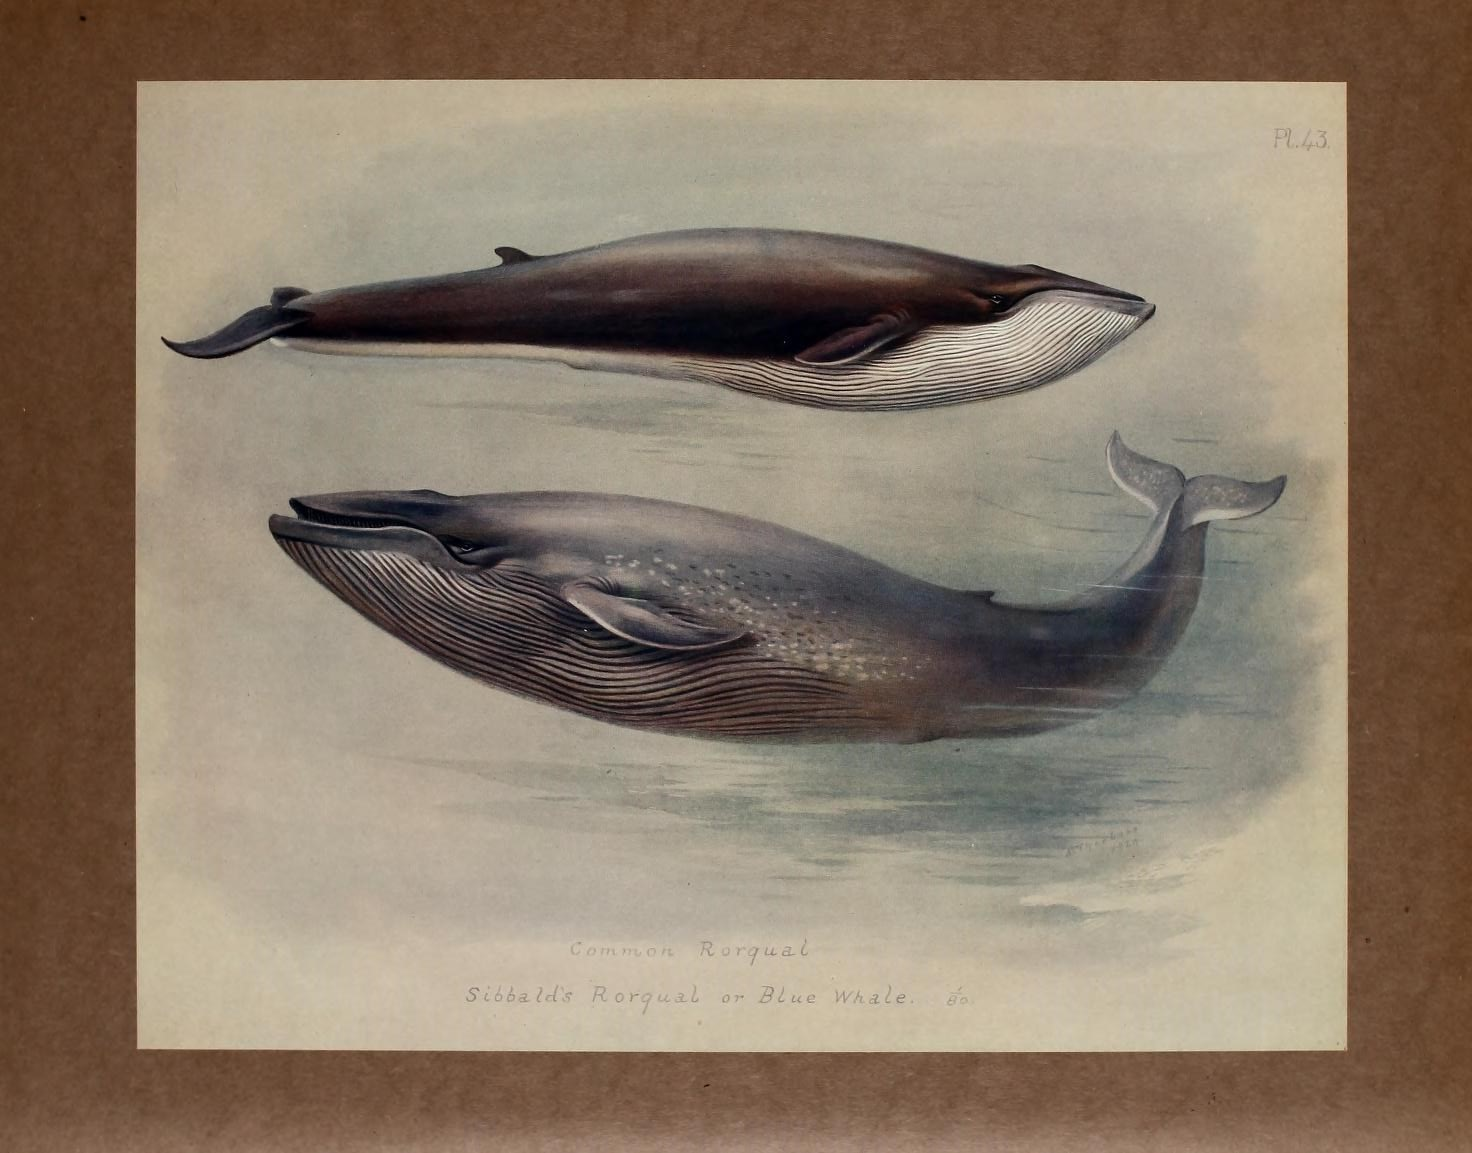 fin whale (Balaenoptera physalus), blue whale (Balaenoptera musculus); Image ONLY